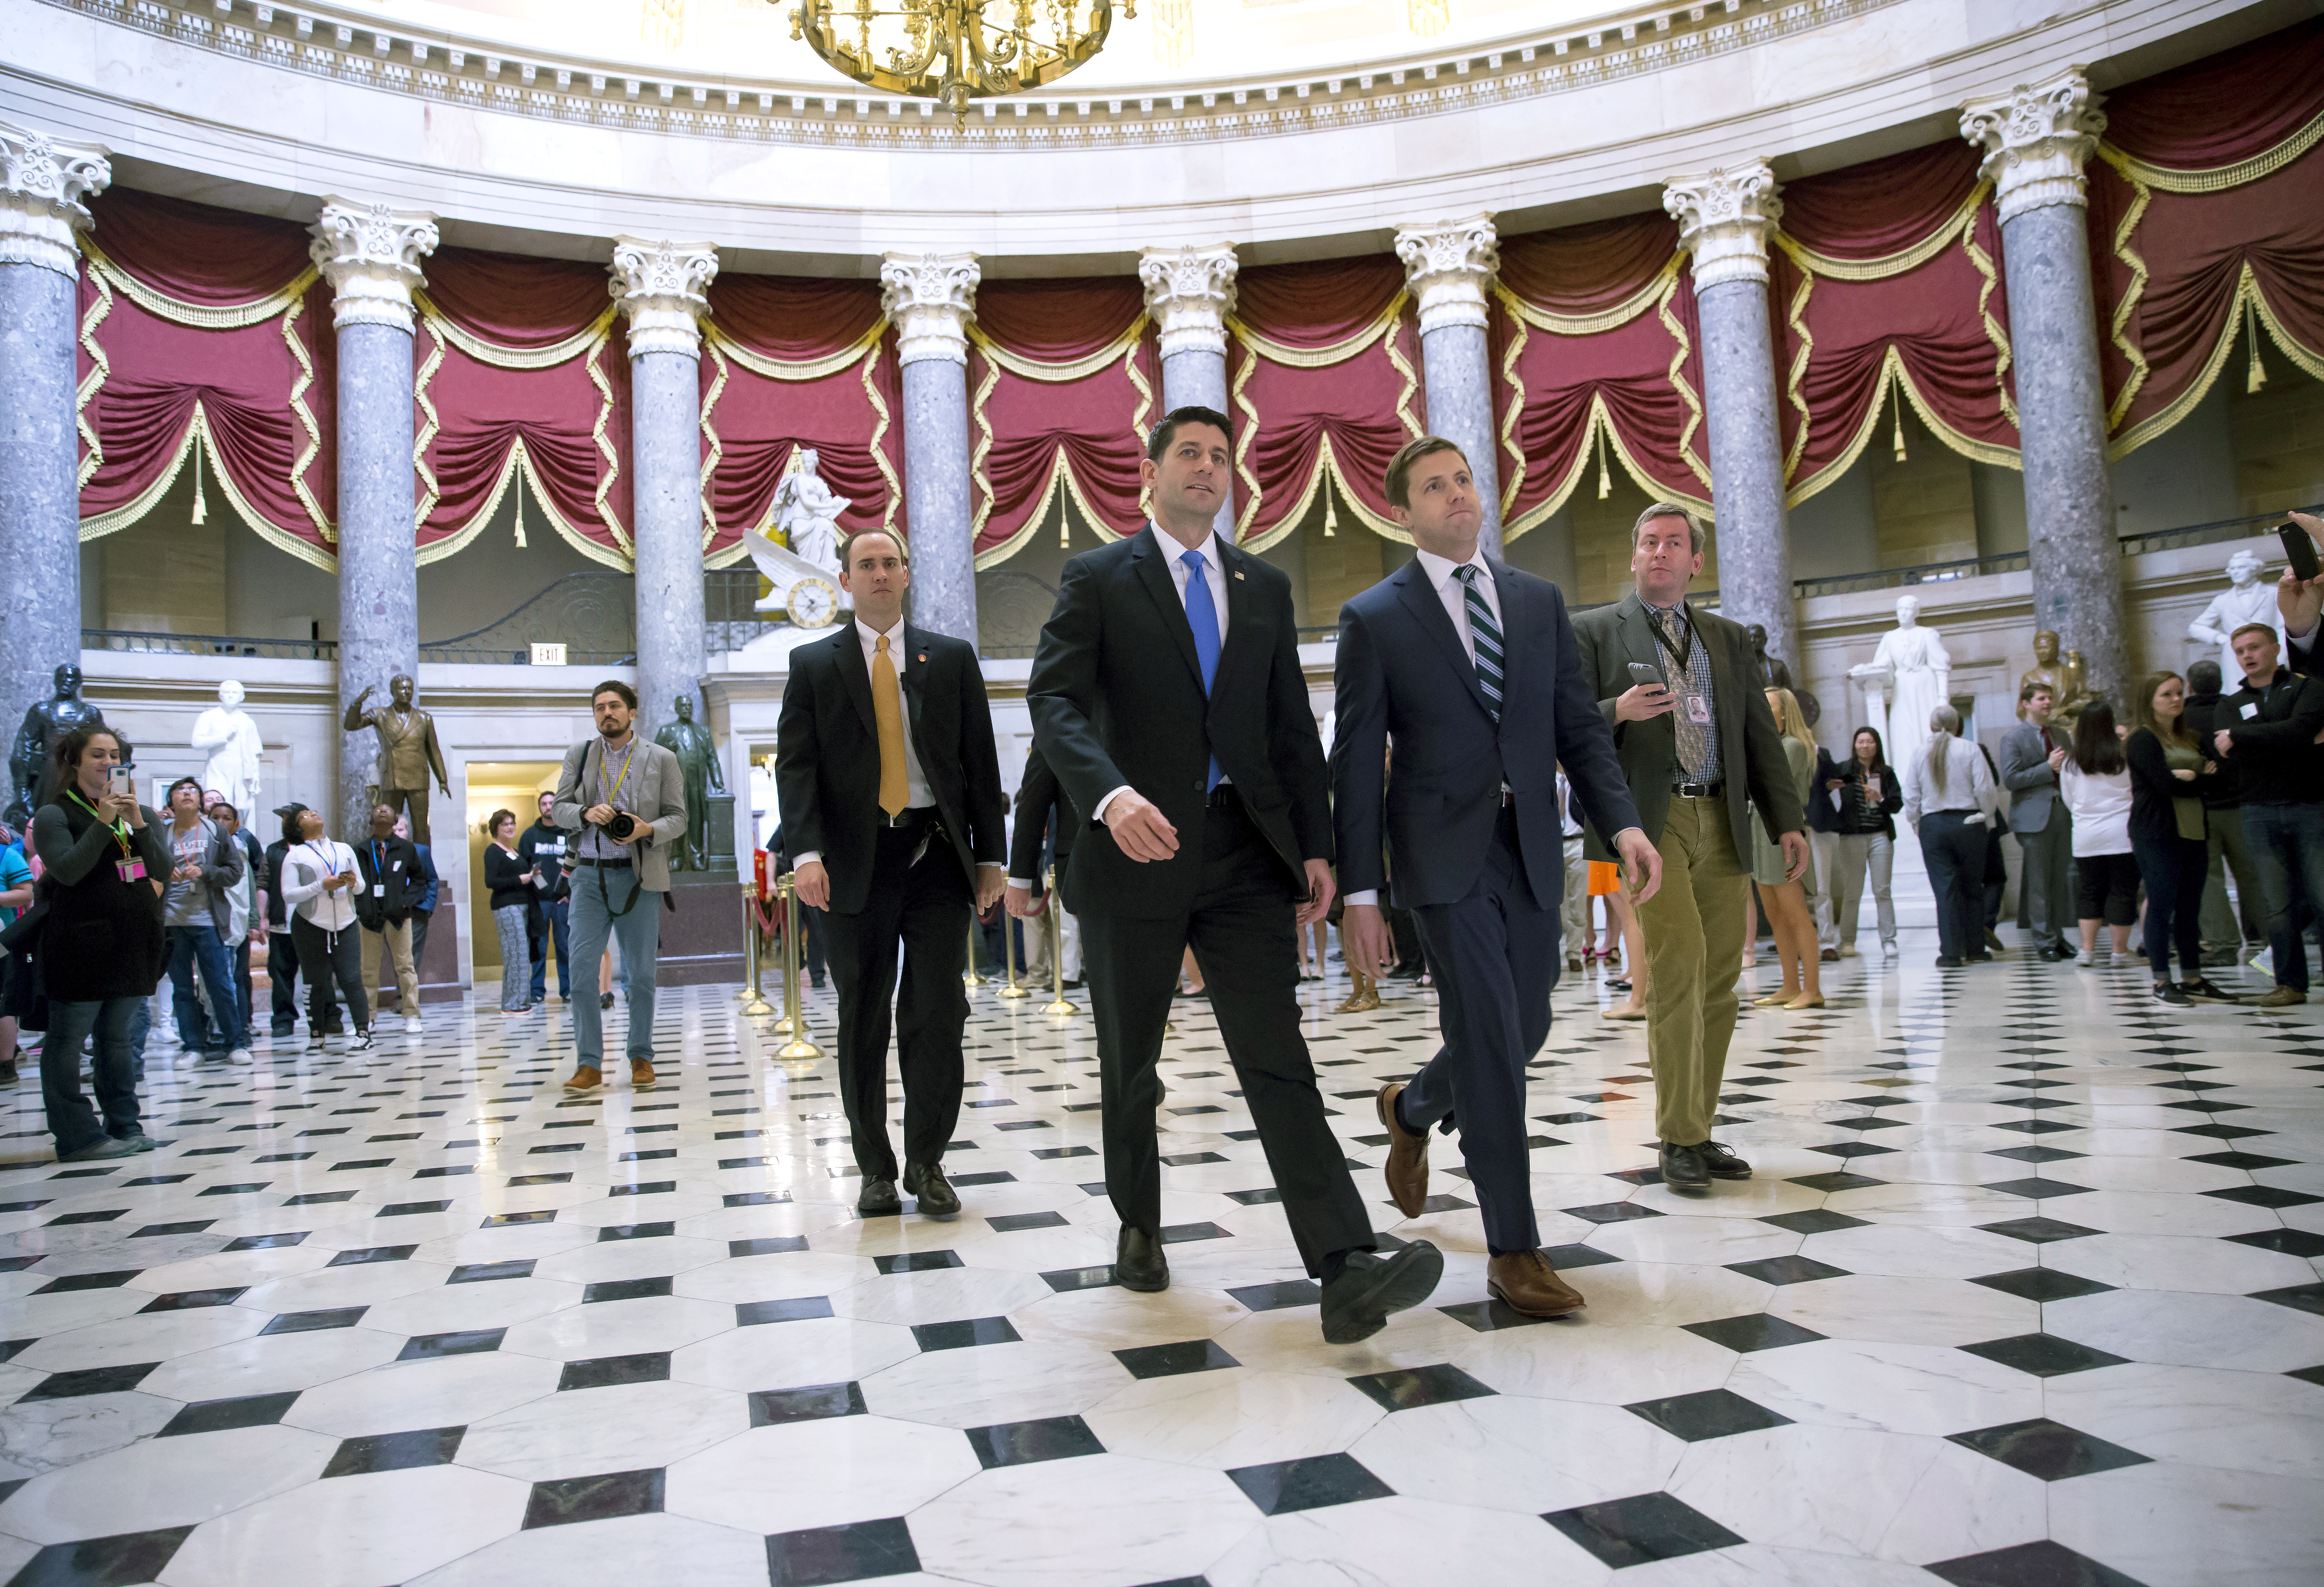 House Speaker Paul Ryan walks to the House chamber on Capitol Hill May 4, 2017 in Washington, DC.